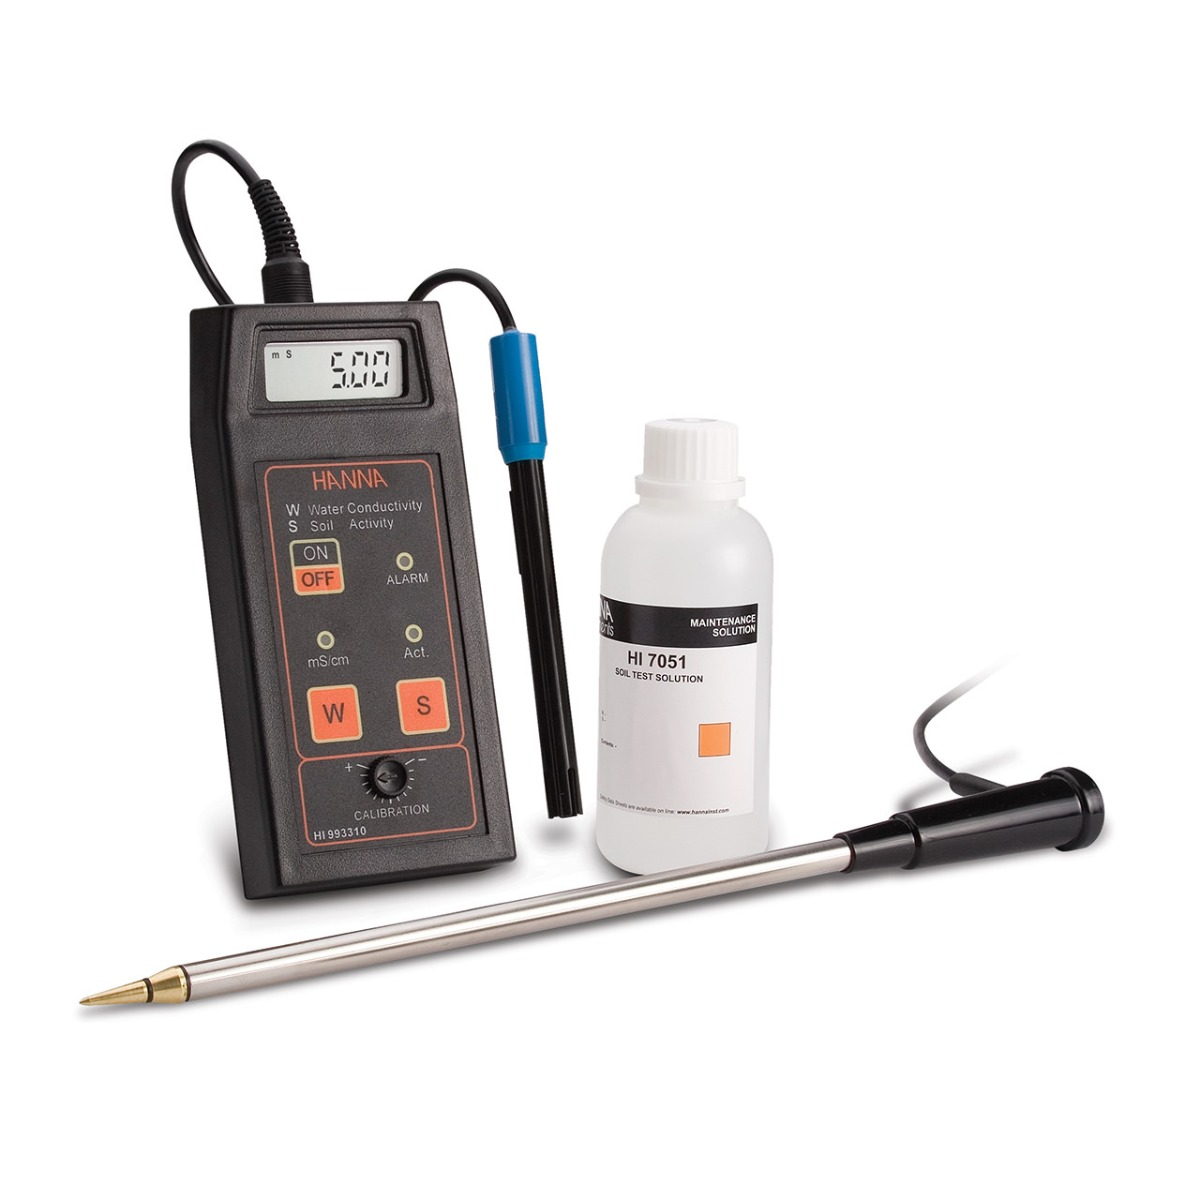 HI993310 Direct Soil Activity and Solution Conductivity Measurement Kit